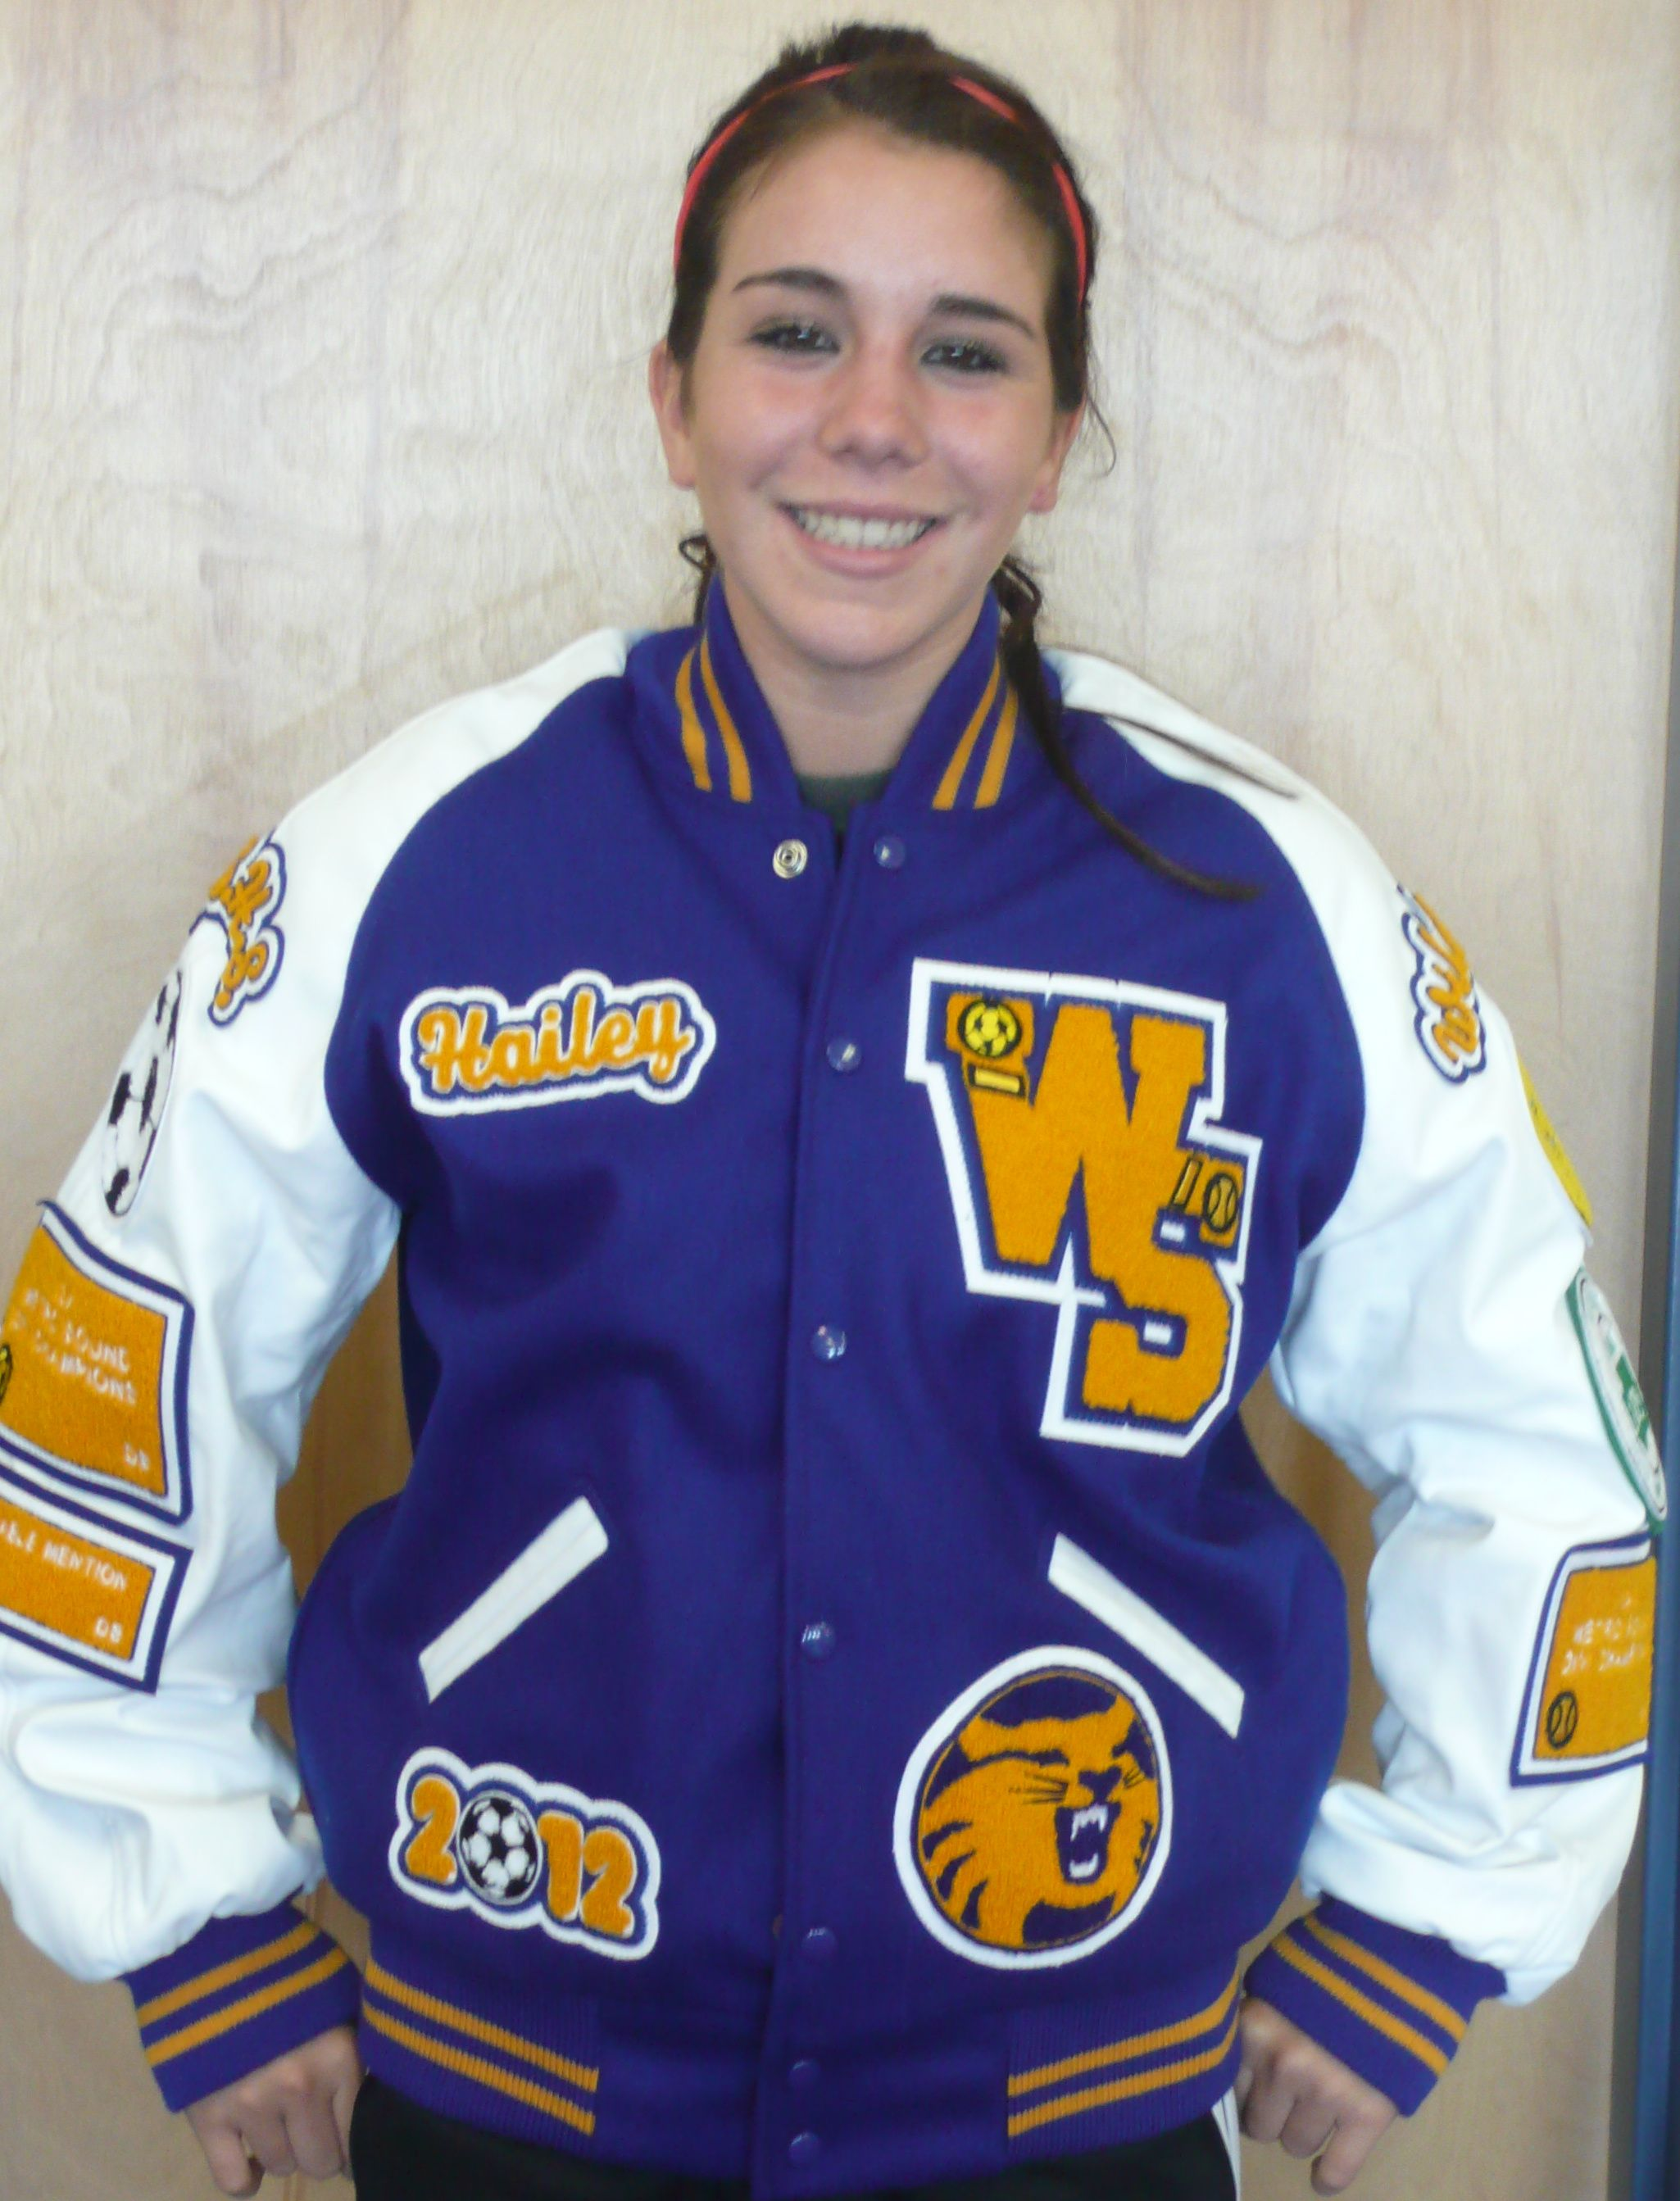 West seattle high school varsity letter jacket nationalachiever west seattle high school varsity letter jacket nationalachiever varsity spiritdancerdesigns Choice Image